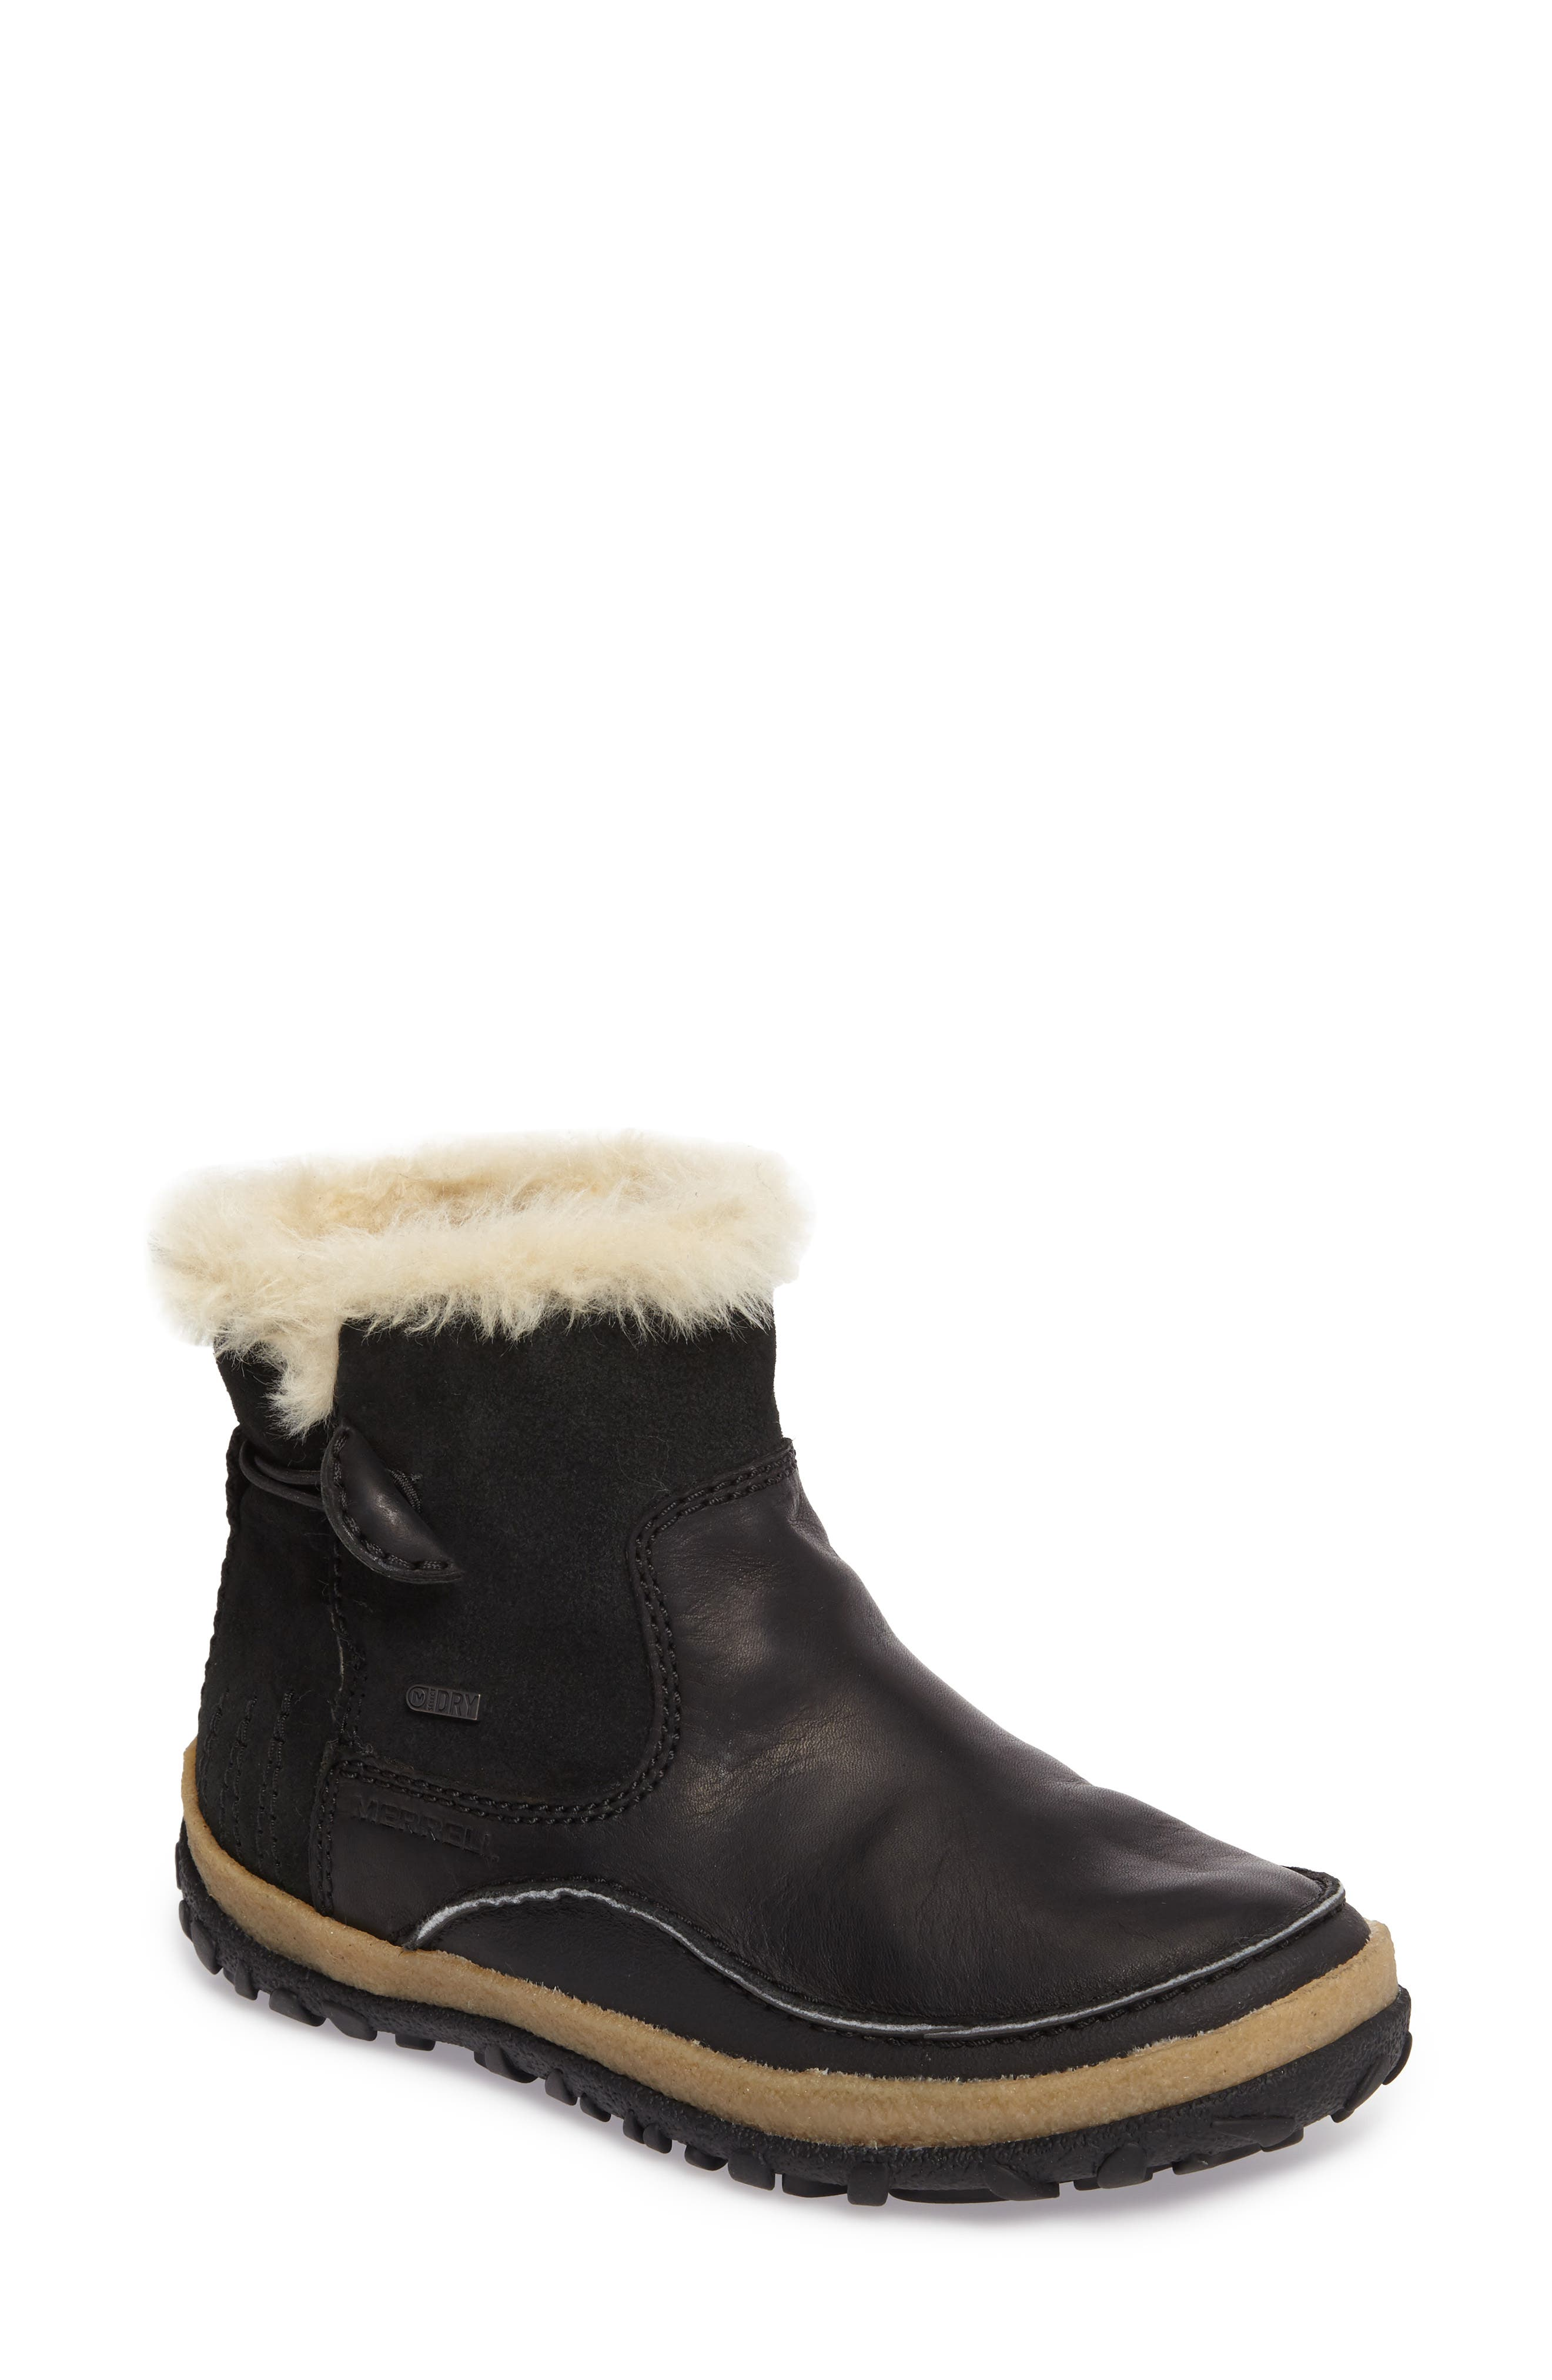 Tremblant Pull-On Polar Waterproof Bootie,                         Main,                         color, 001